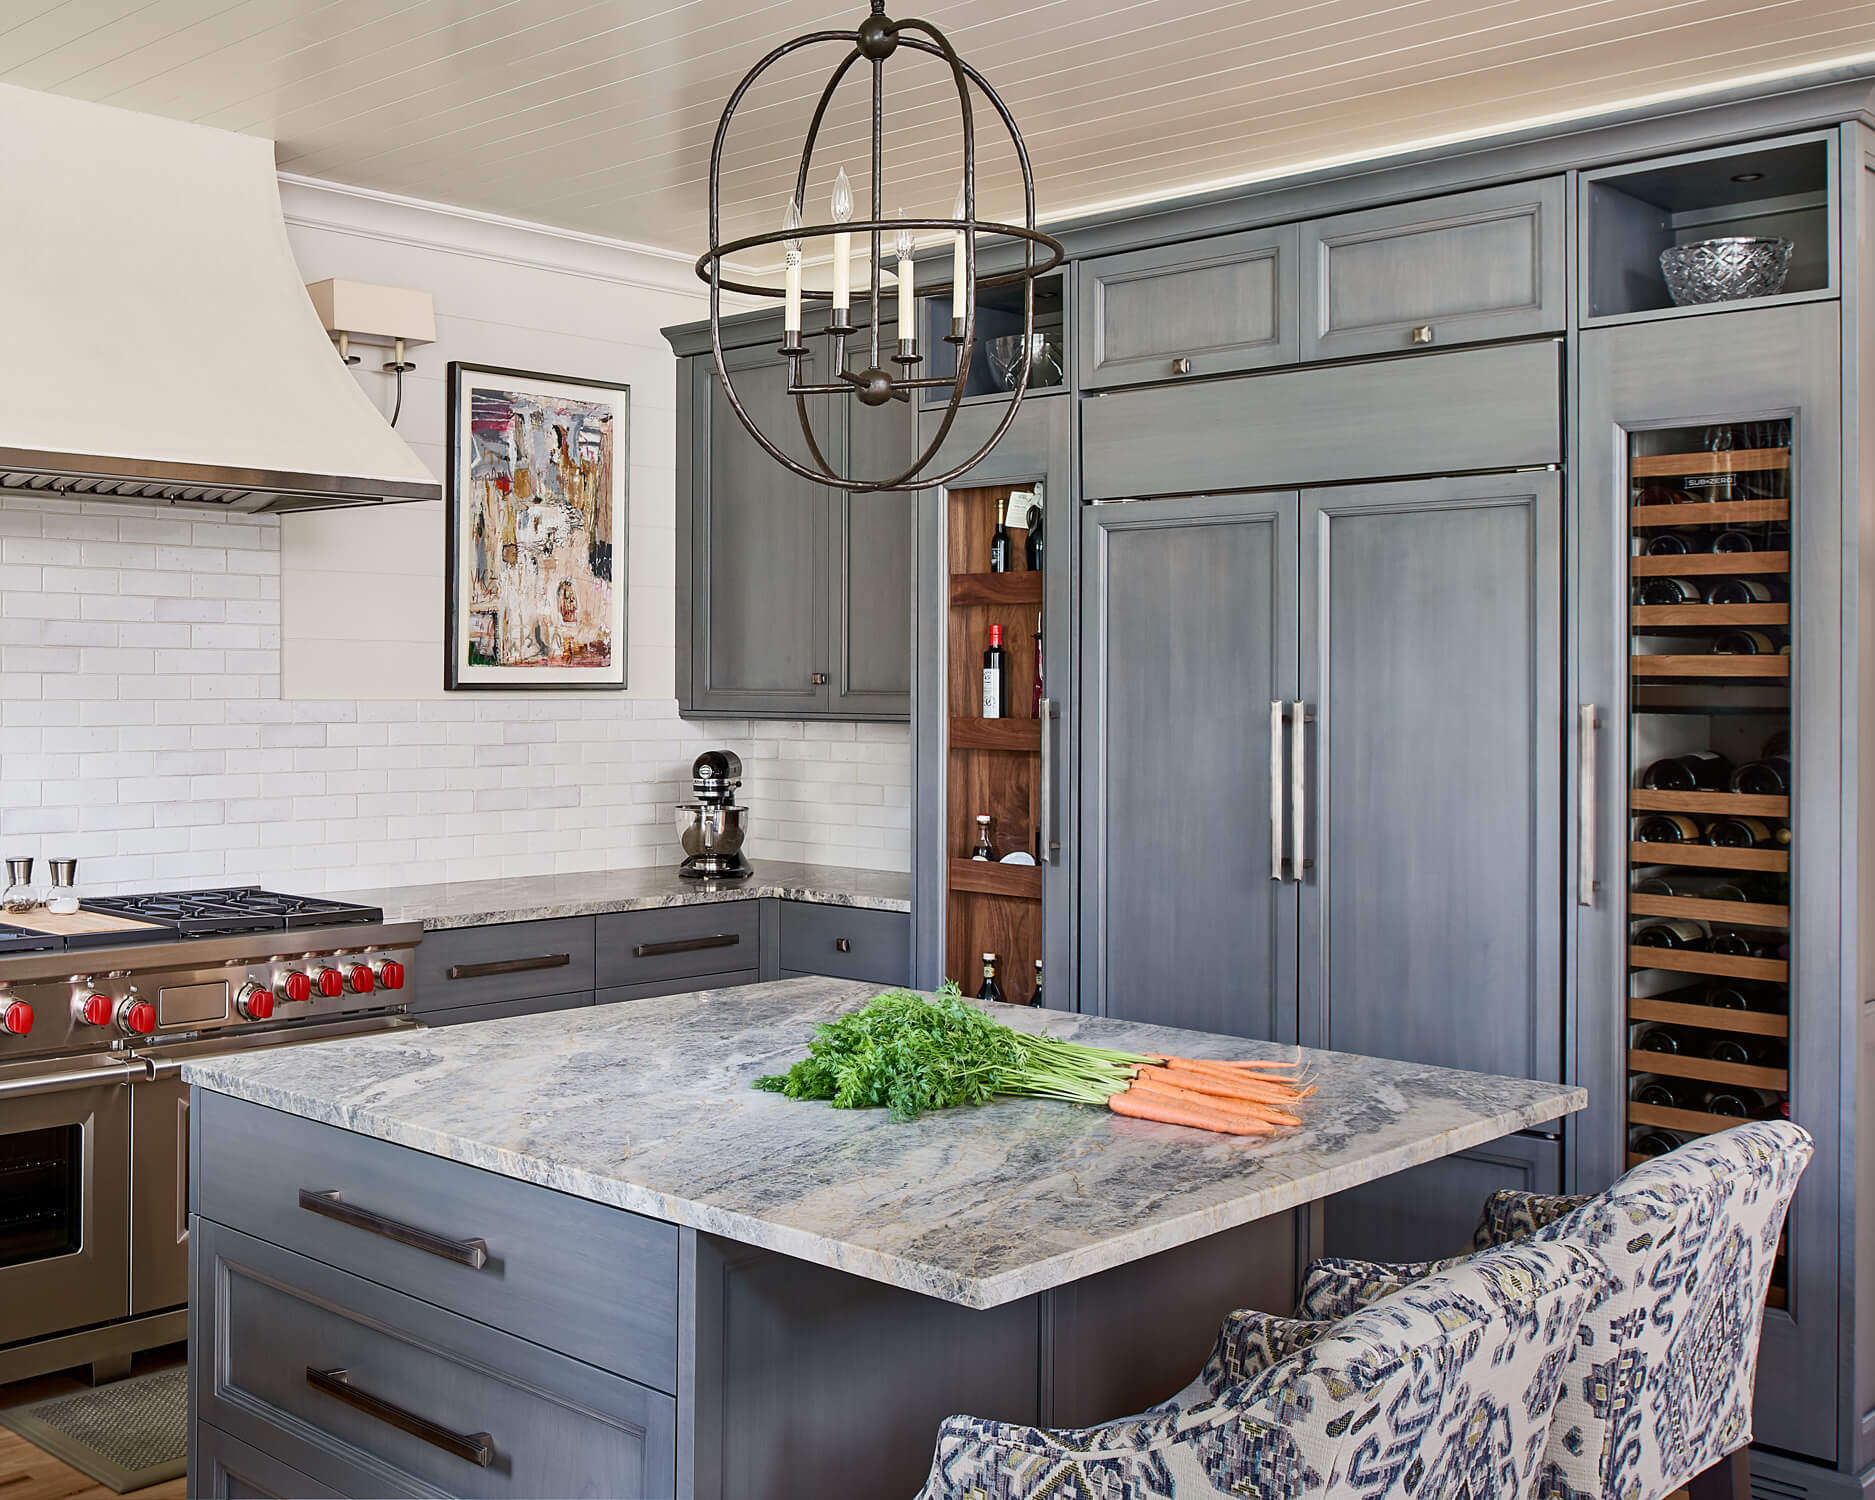 Blue stained cabinetry and custom appliance panels